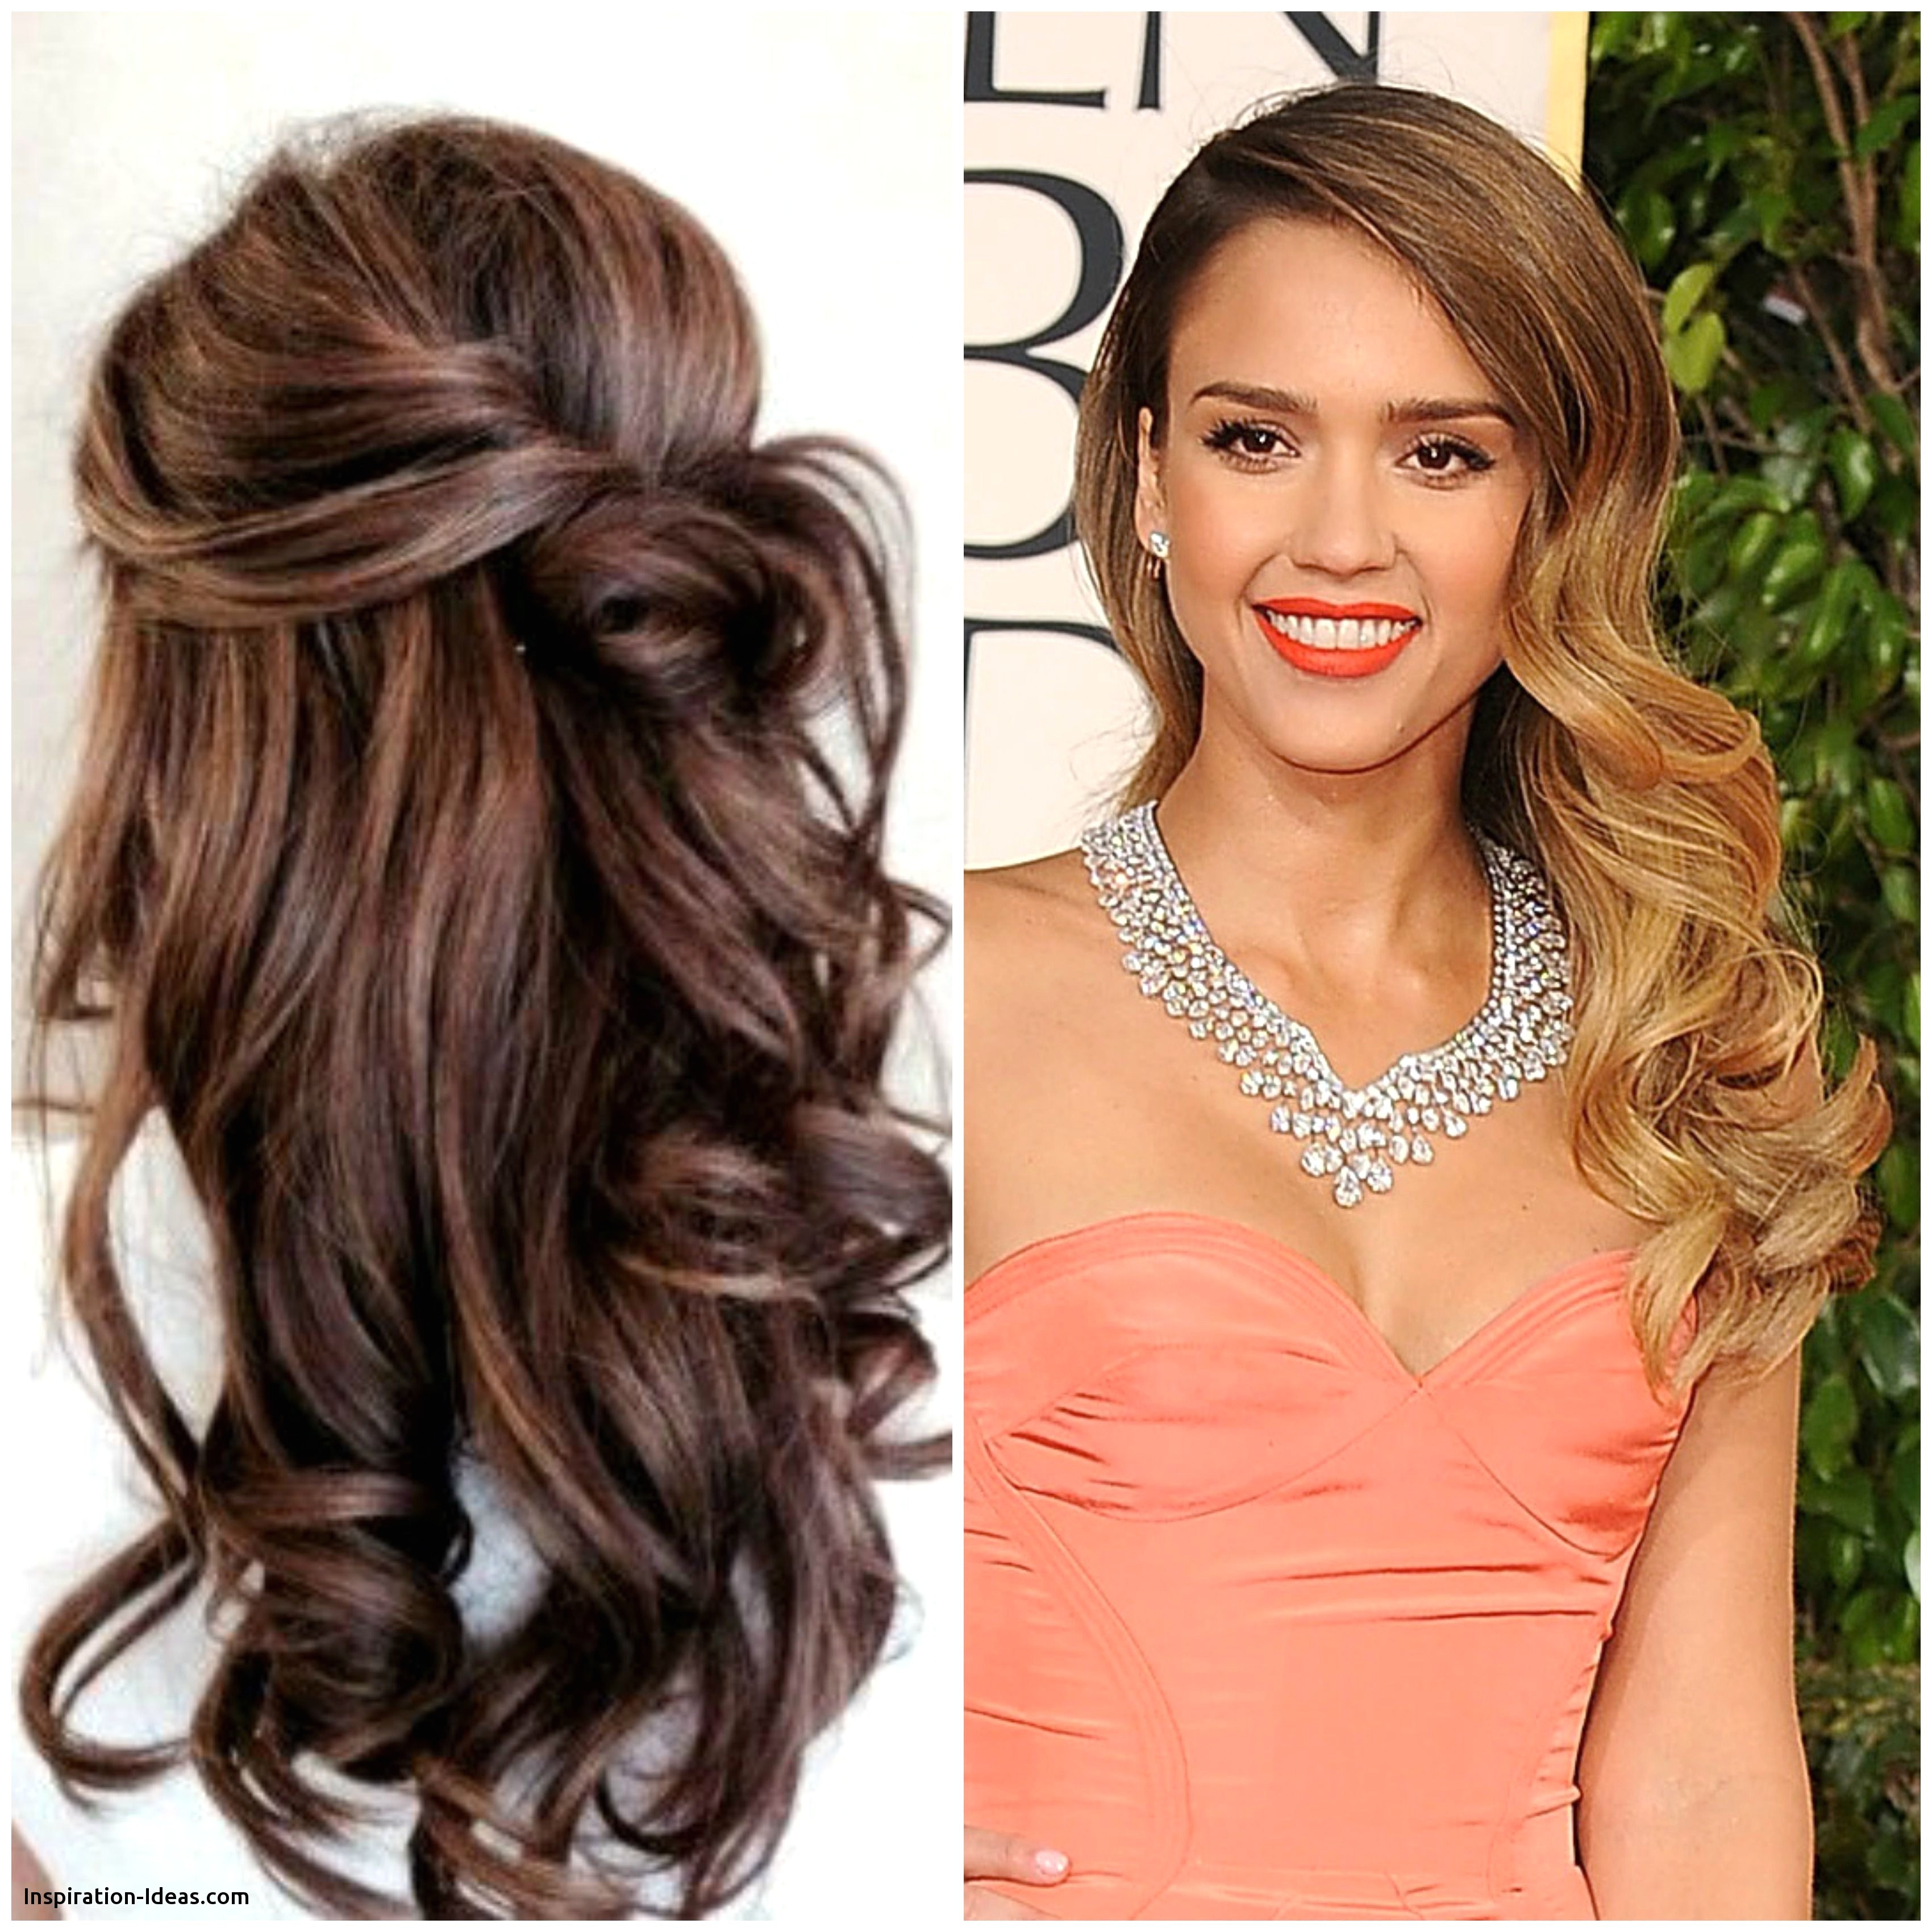 Workout Hairstyles Long Hair Best Workout Hairstyles for Curly Hair – Aidasmakeup